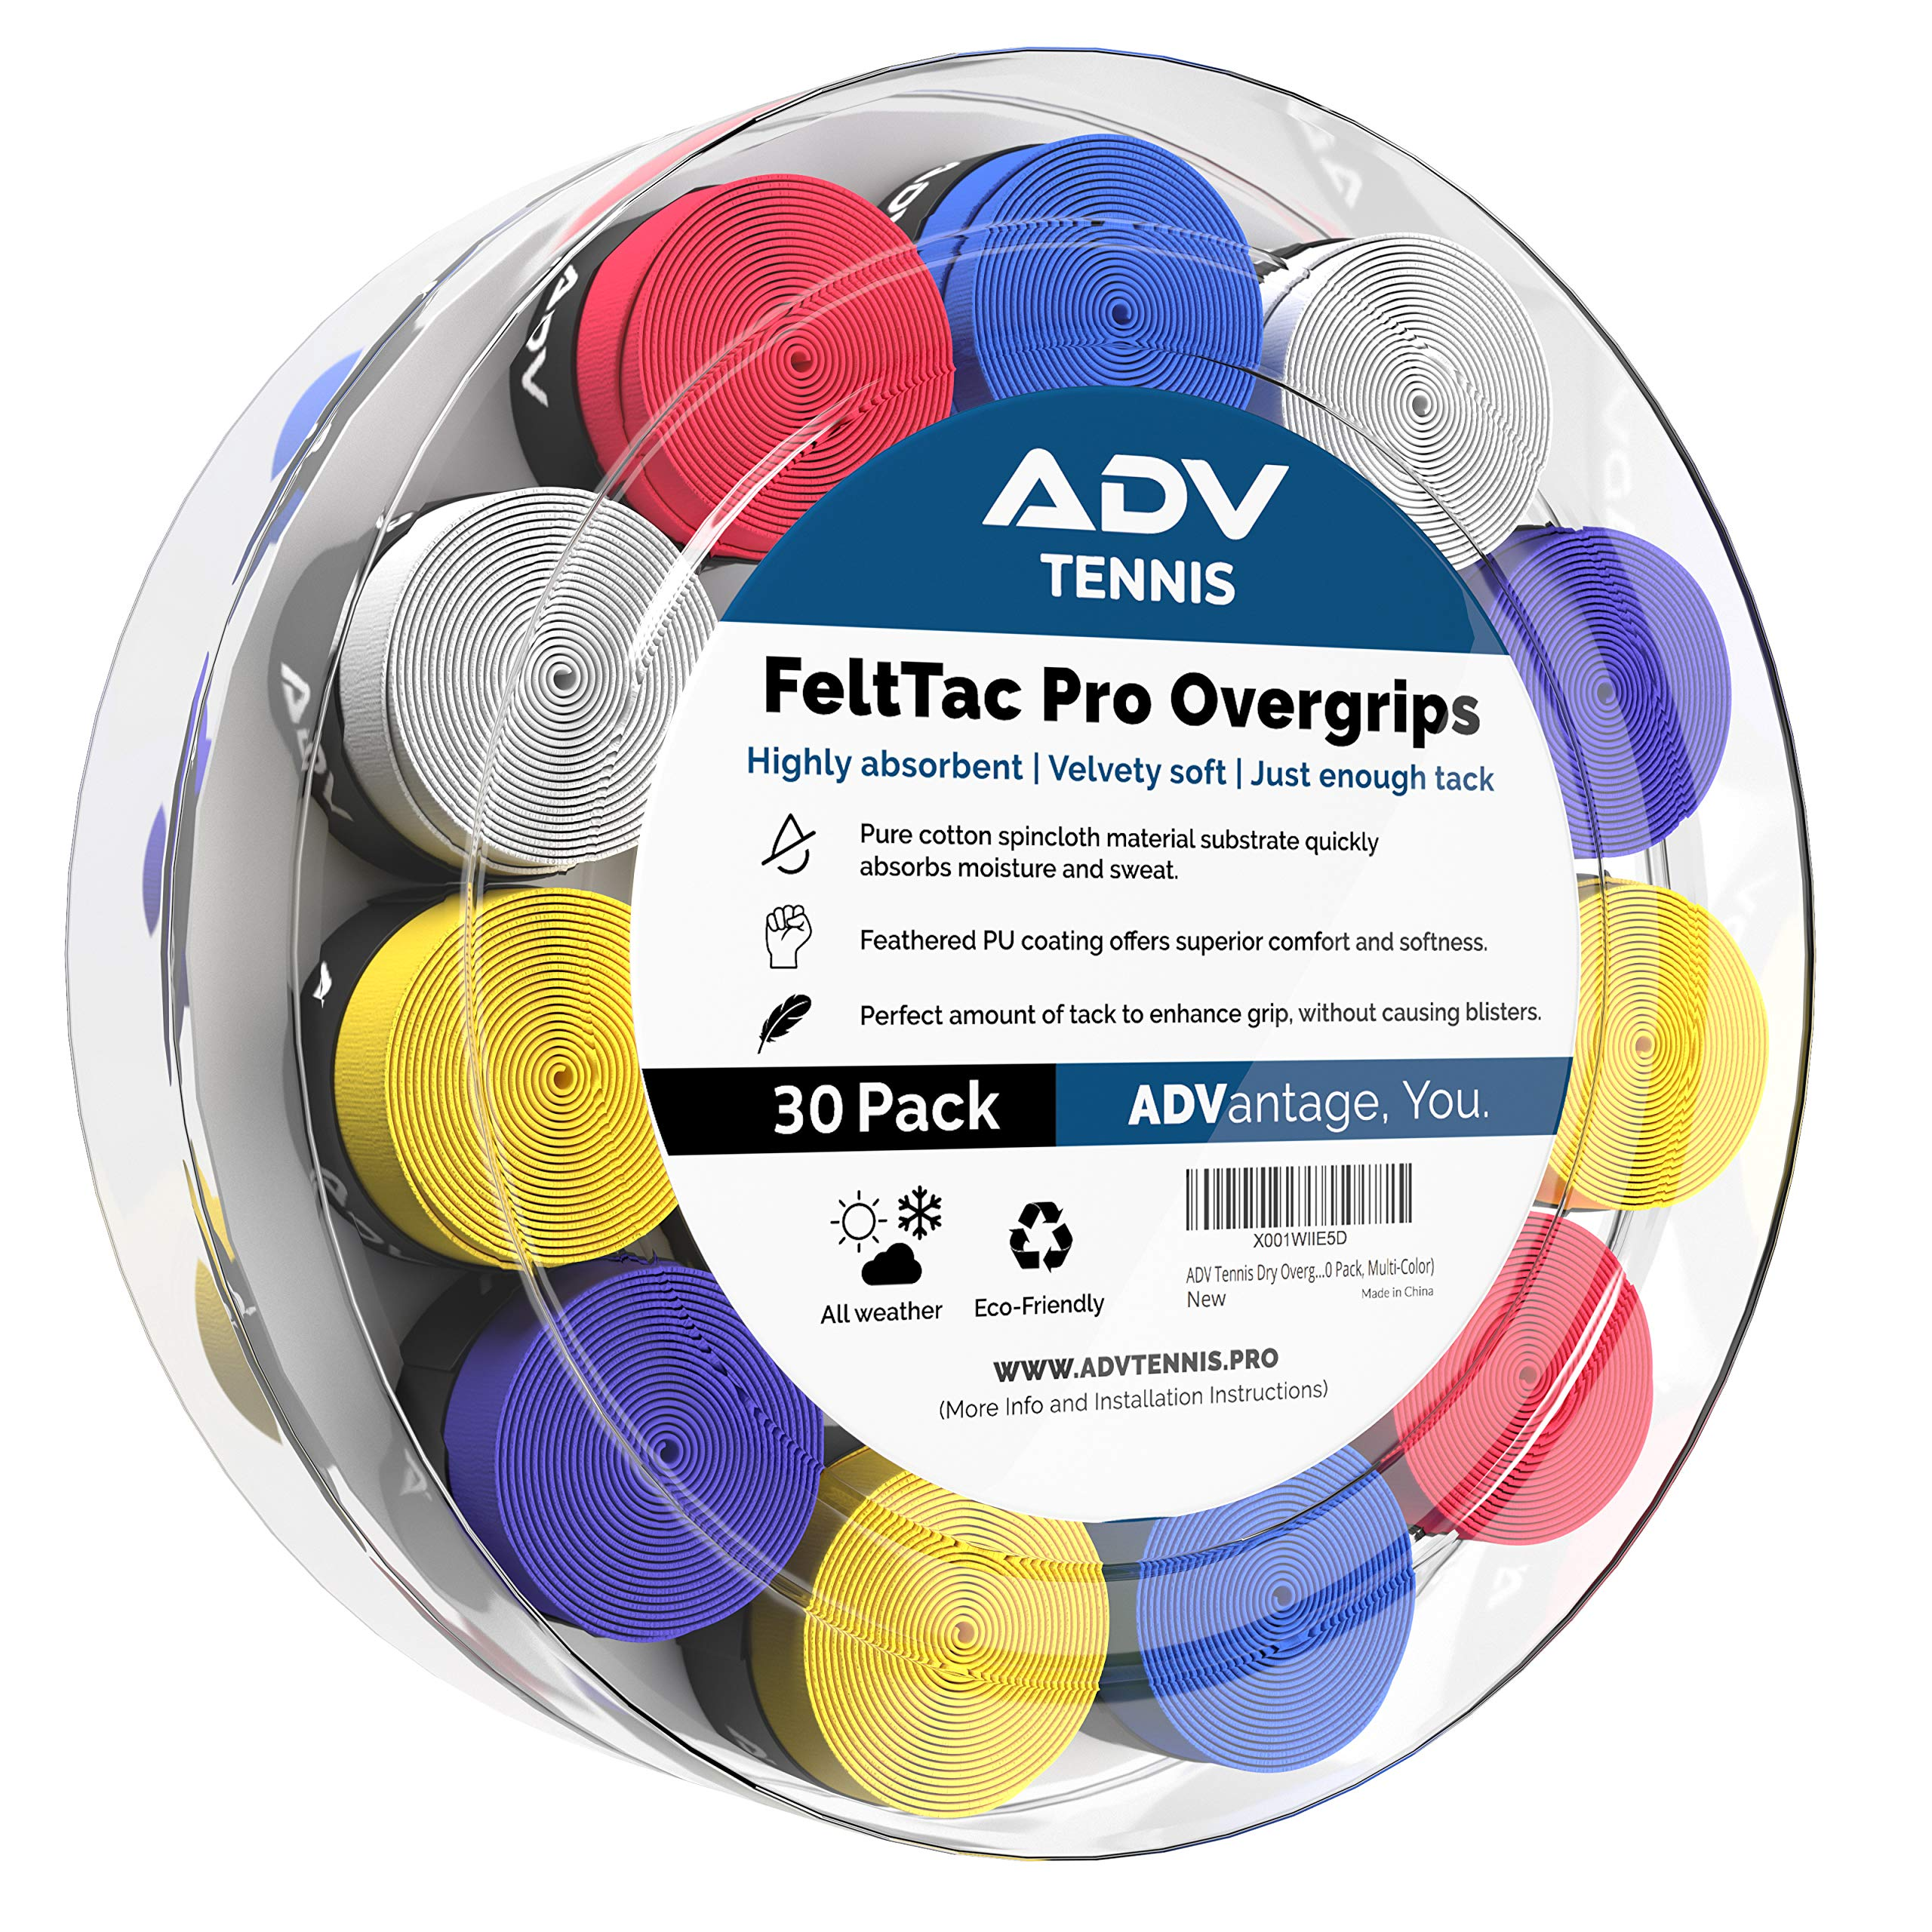 ADV Tennis Dry Overgrip - Remarkably Absorbent - Must Feel Velvety Comfort - Exclusive FeltTac Material (30 Pack, Multi-Color)